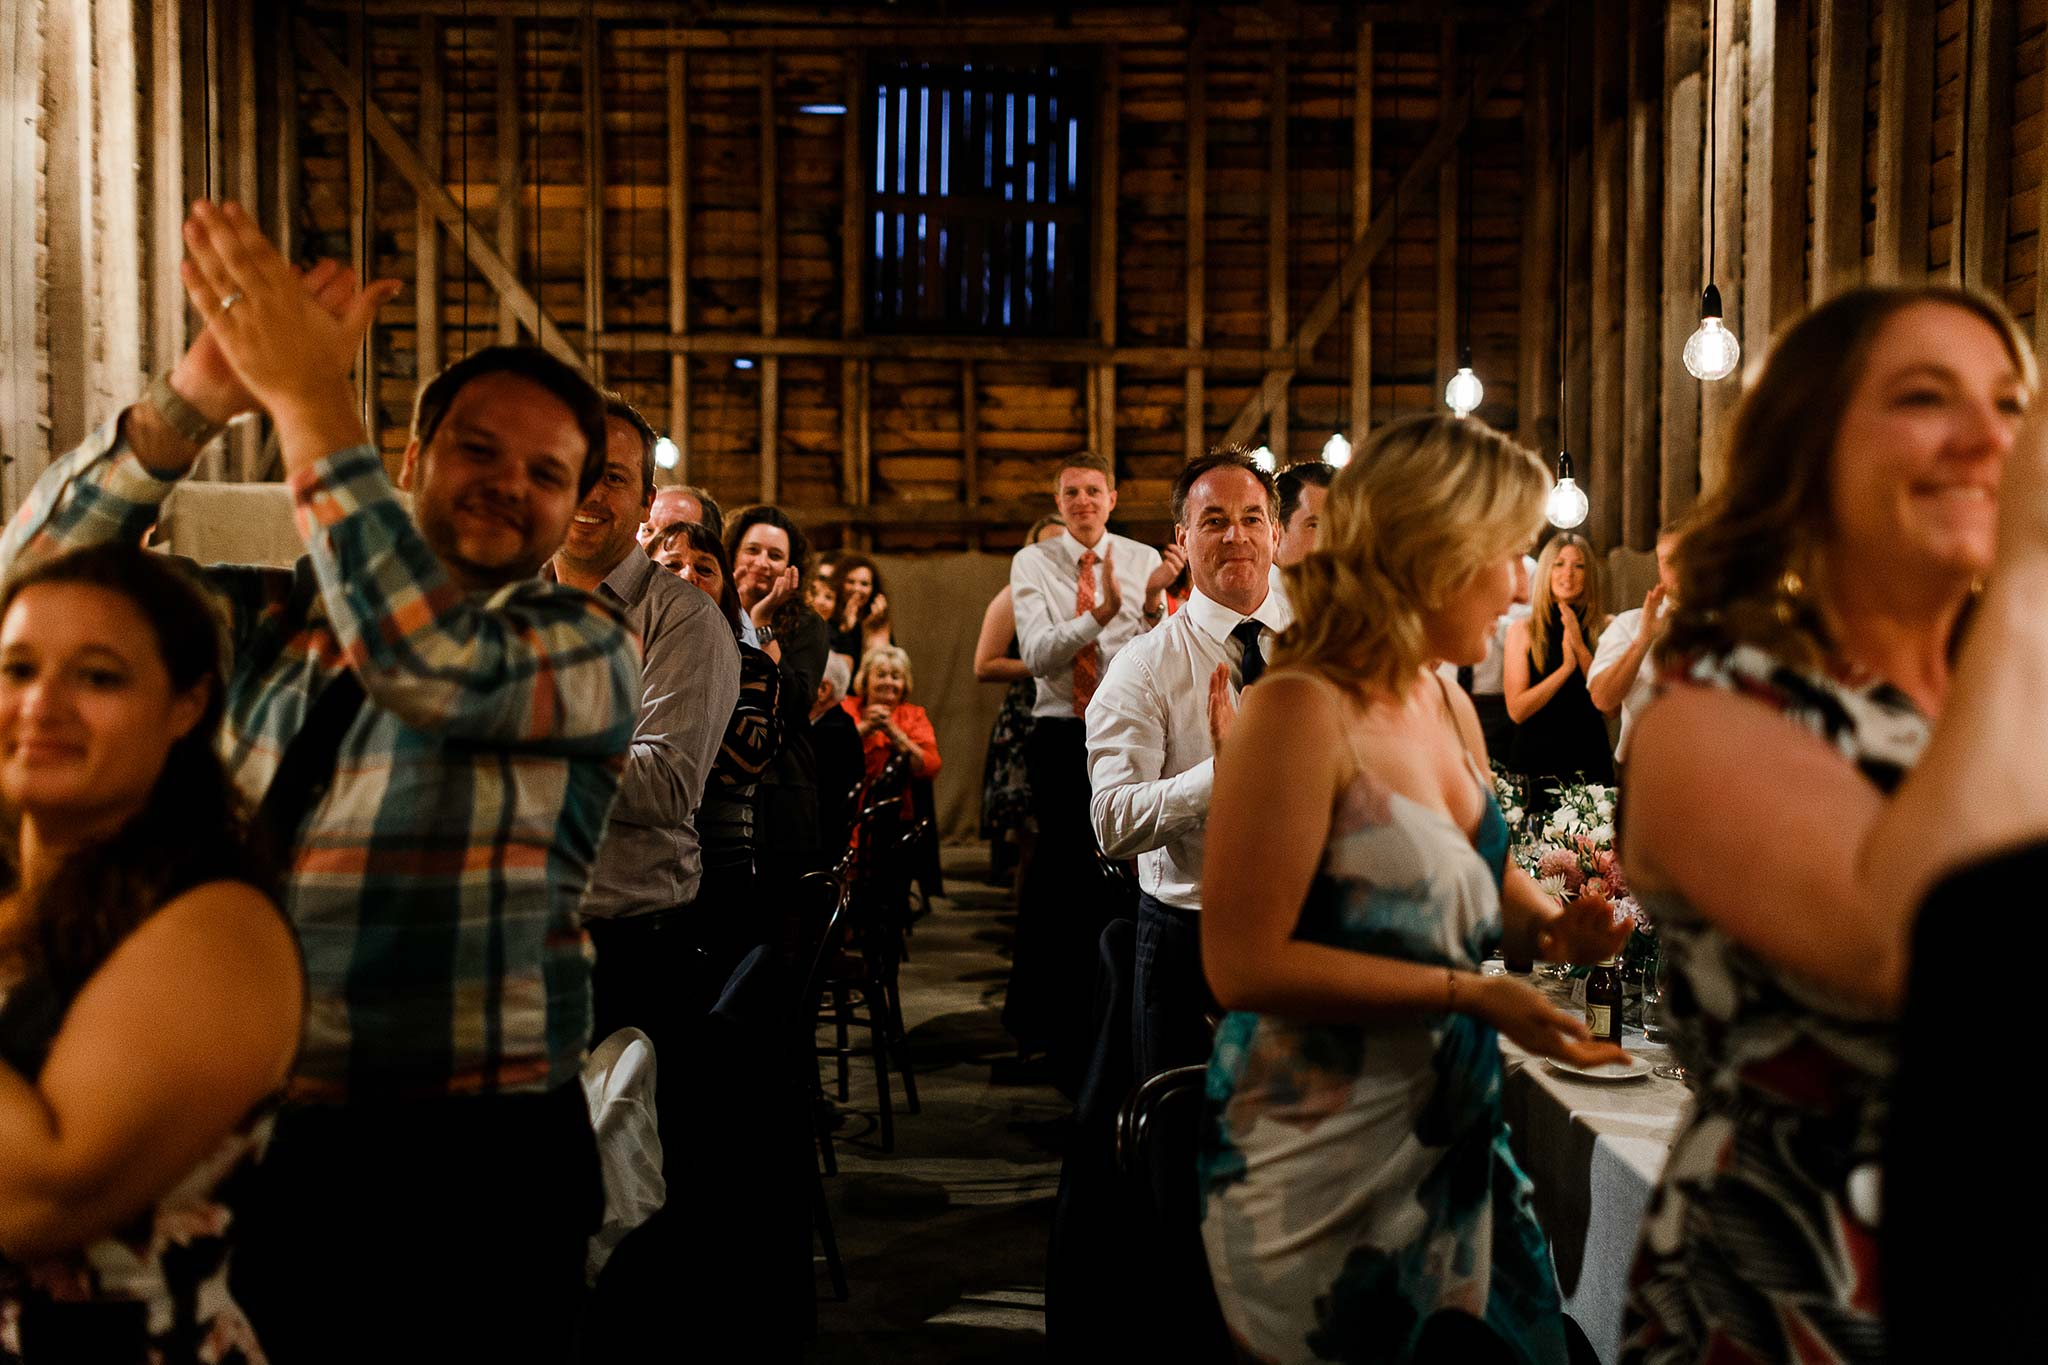 Launceston-Brickendon-barn-Wedding-Photographer-reception-applause